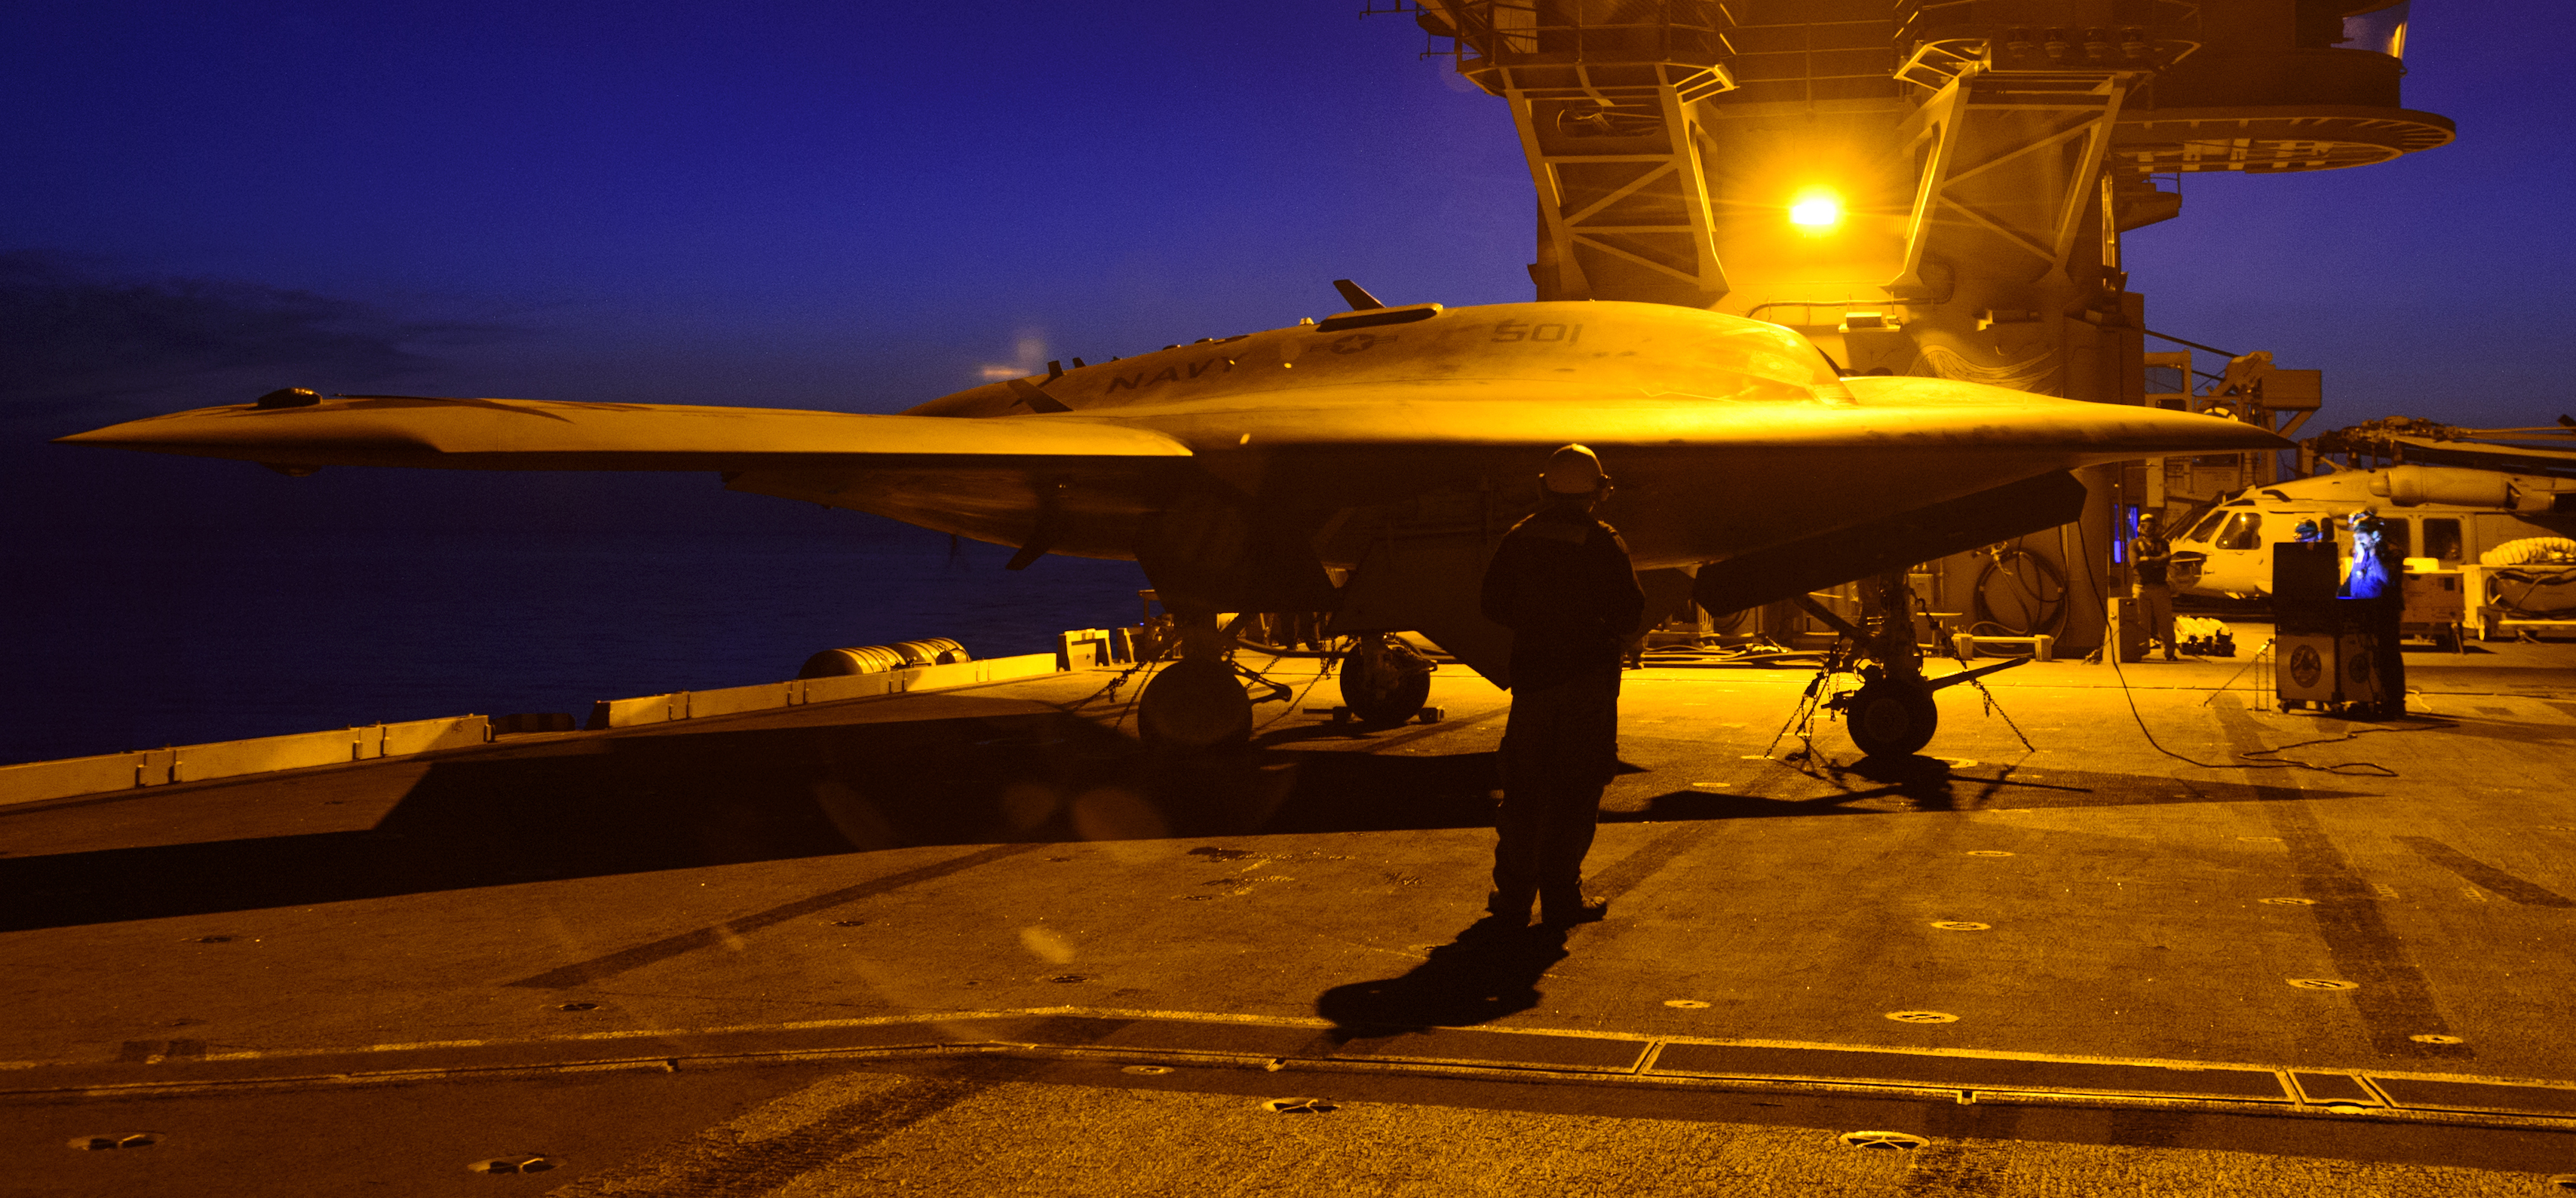 Navy's unmanned X-47B conducts night flight operations aboard the aircraft carrier USS Theodore Roosevelt (CVN-71) on Aug. 21, 2014. US Navy Photo